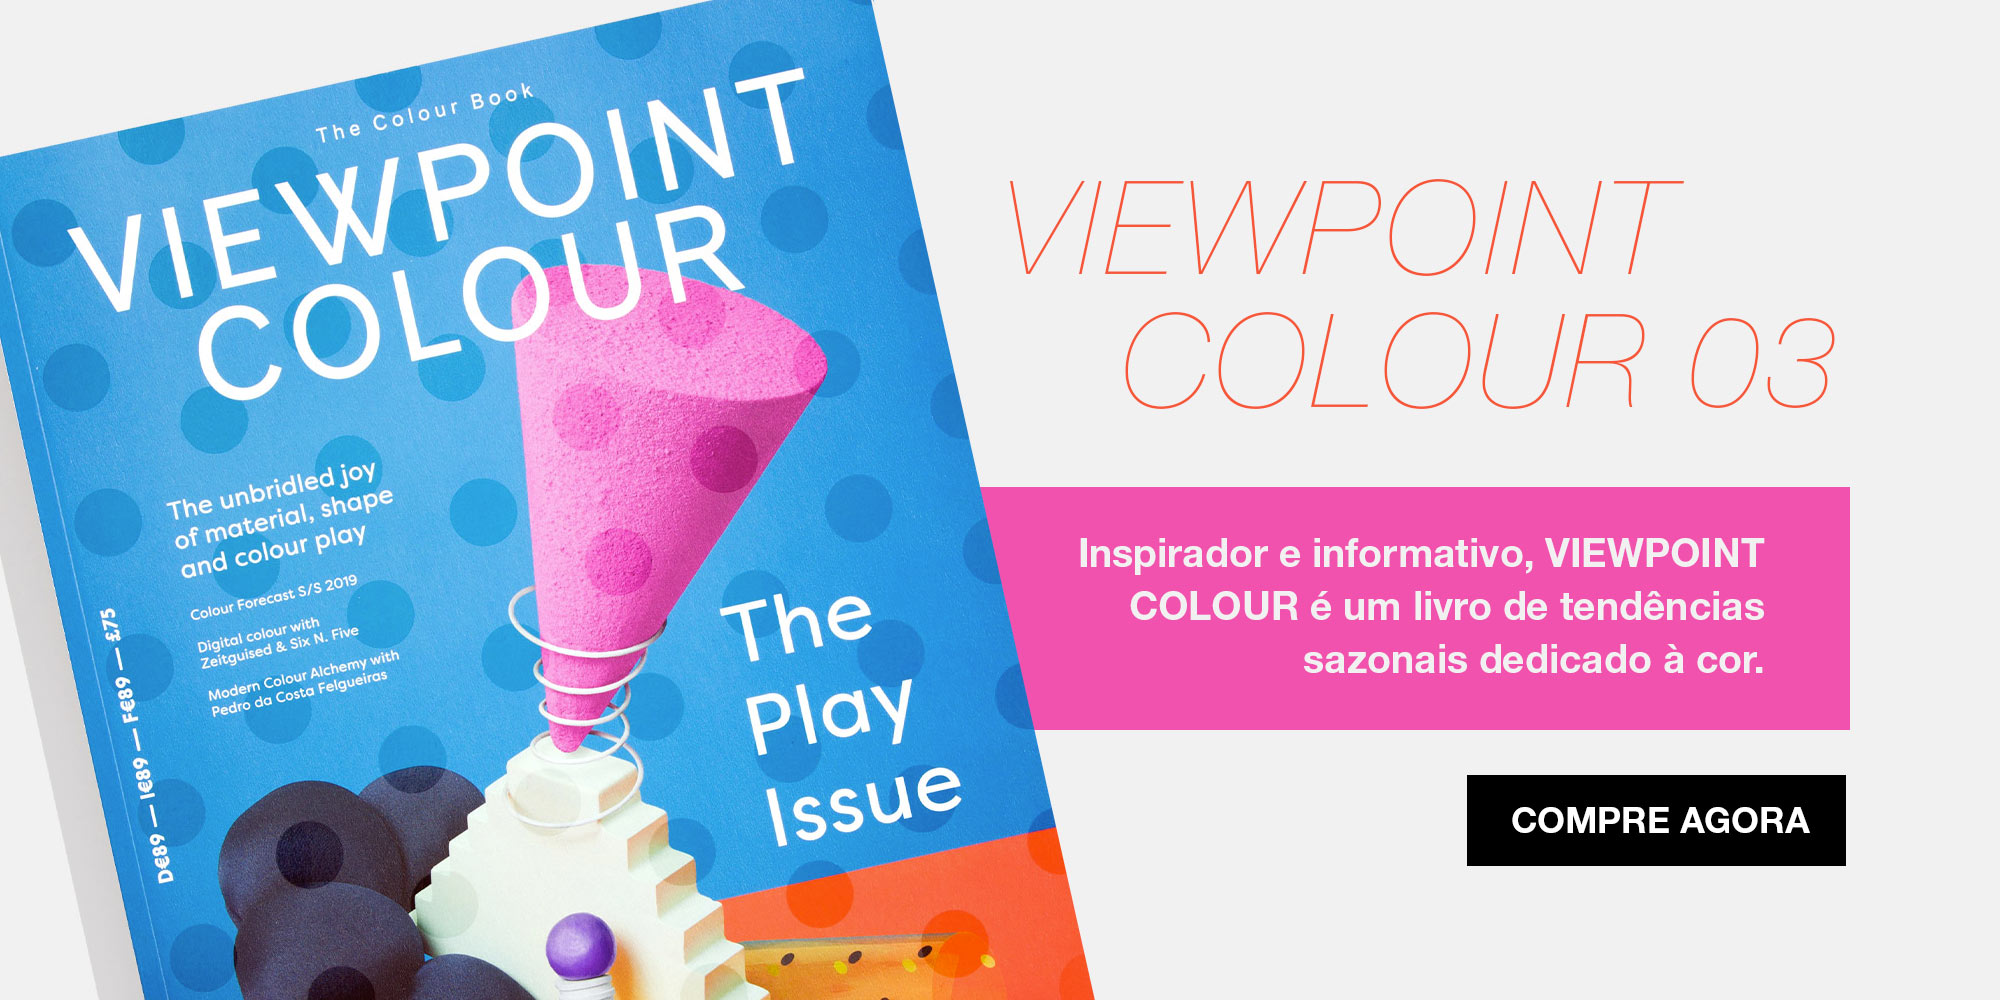 Pantone Viewpoint Colour 03